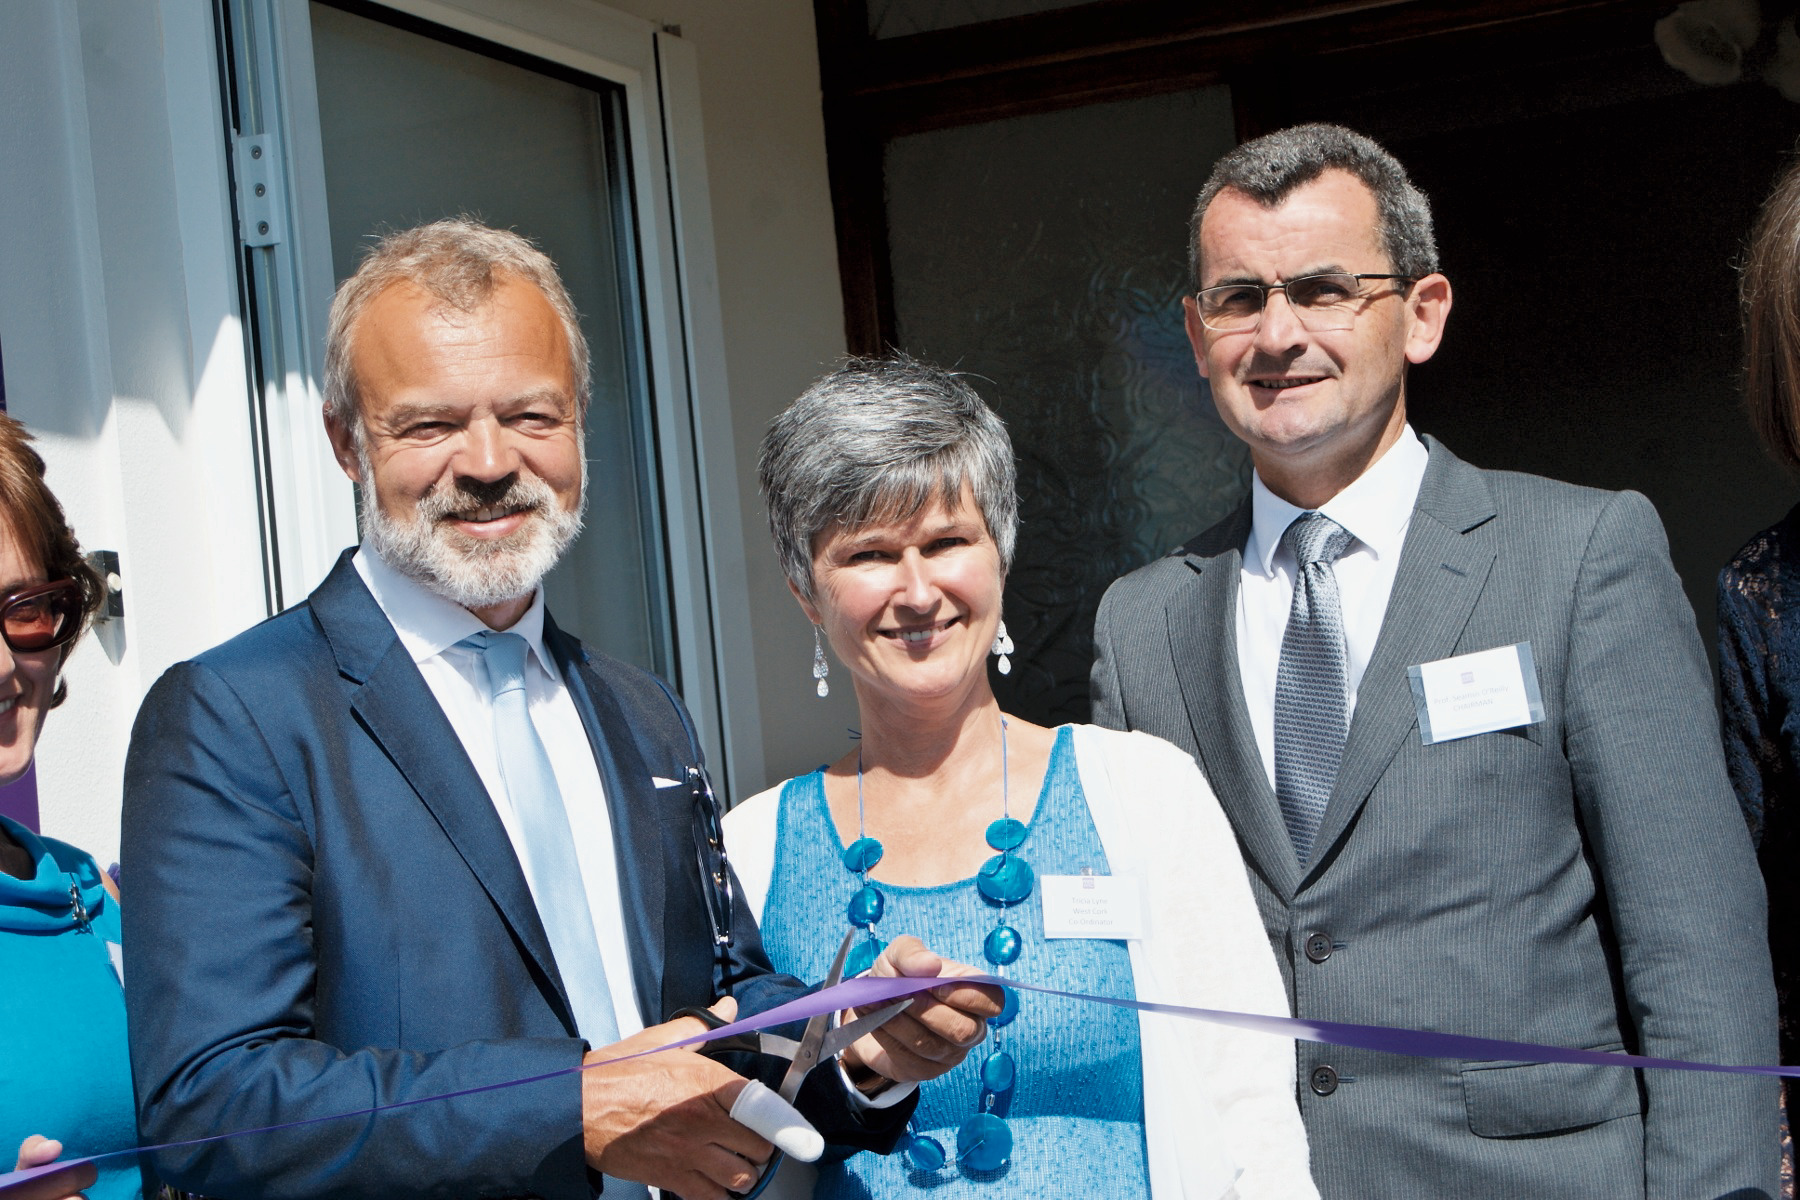 Graham Norton opening the Cork ARC Centre in Bantry August 15, with Patricia Lyne, West Cork Co-ordinator and Prof Seamus O'Reilly, Chairman, Board of Trustees.jpg